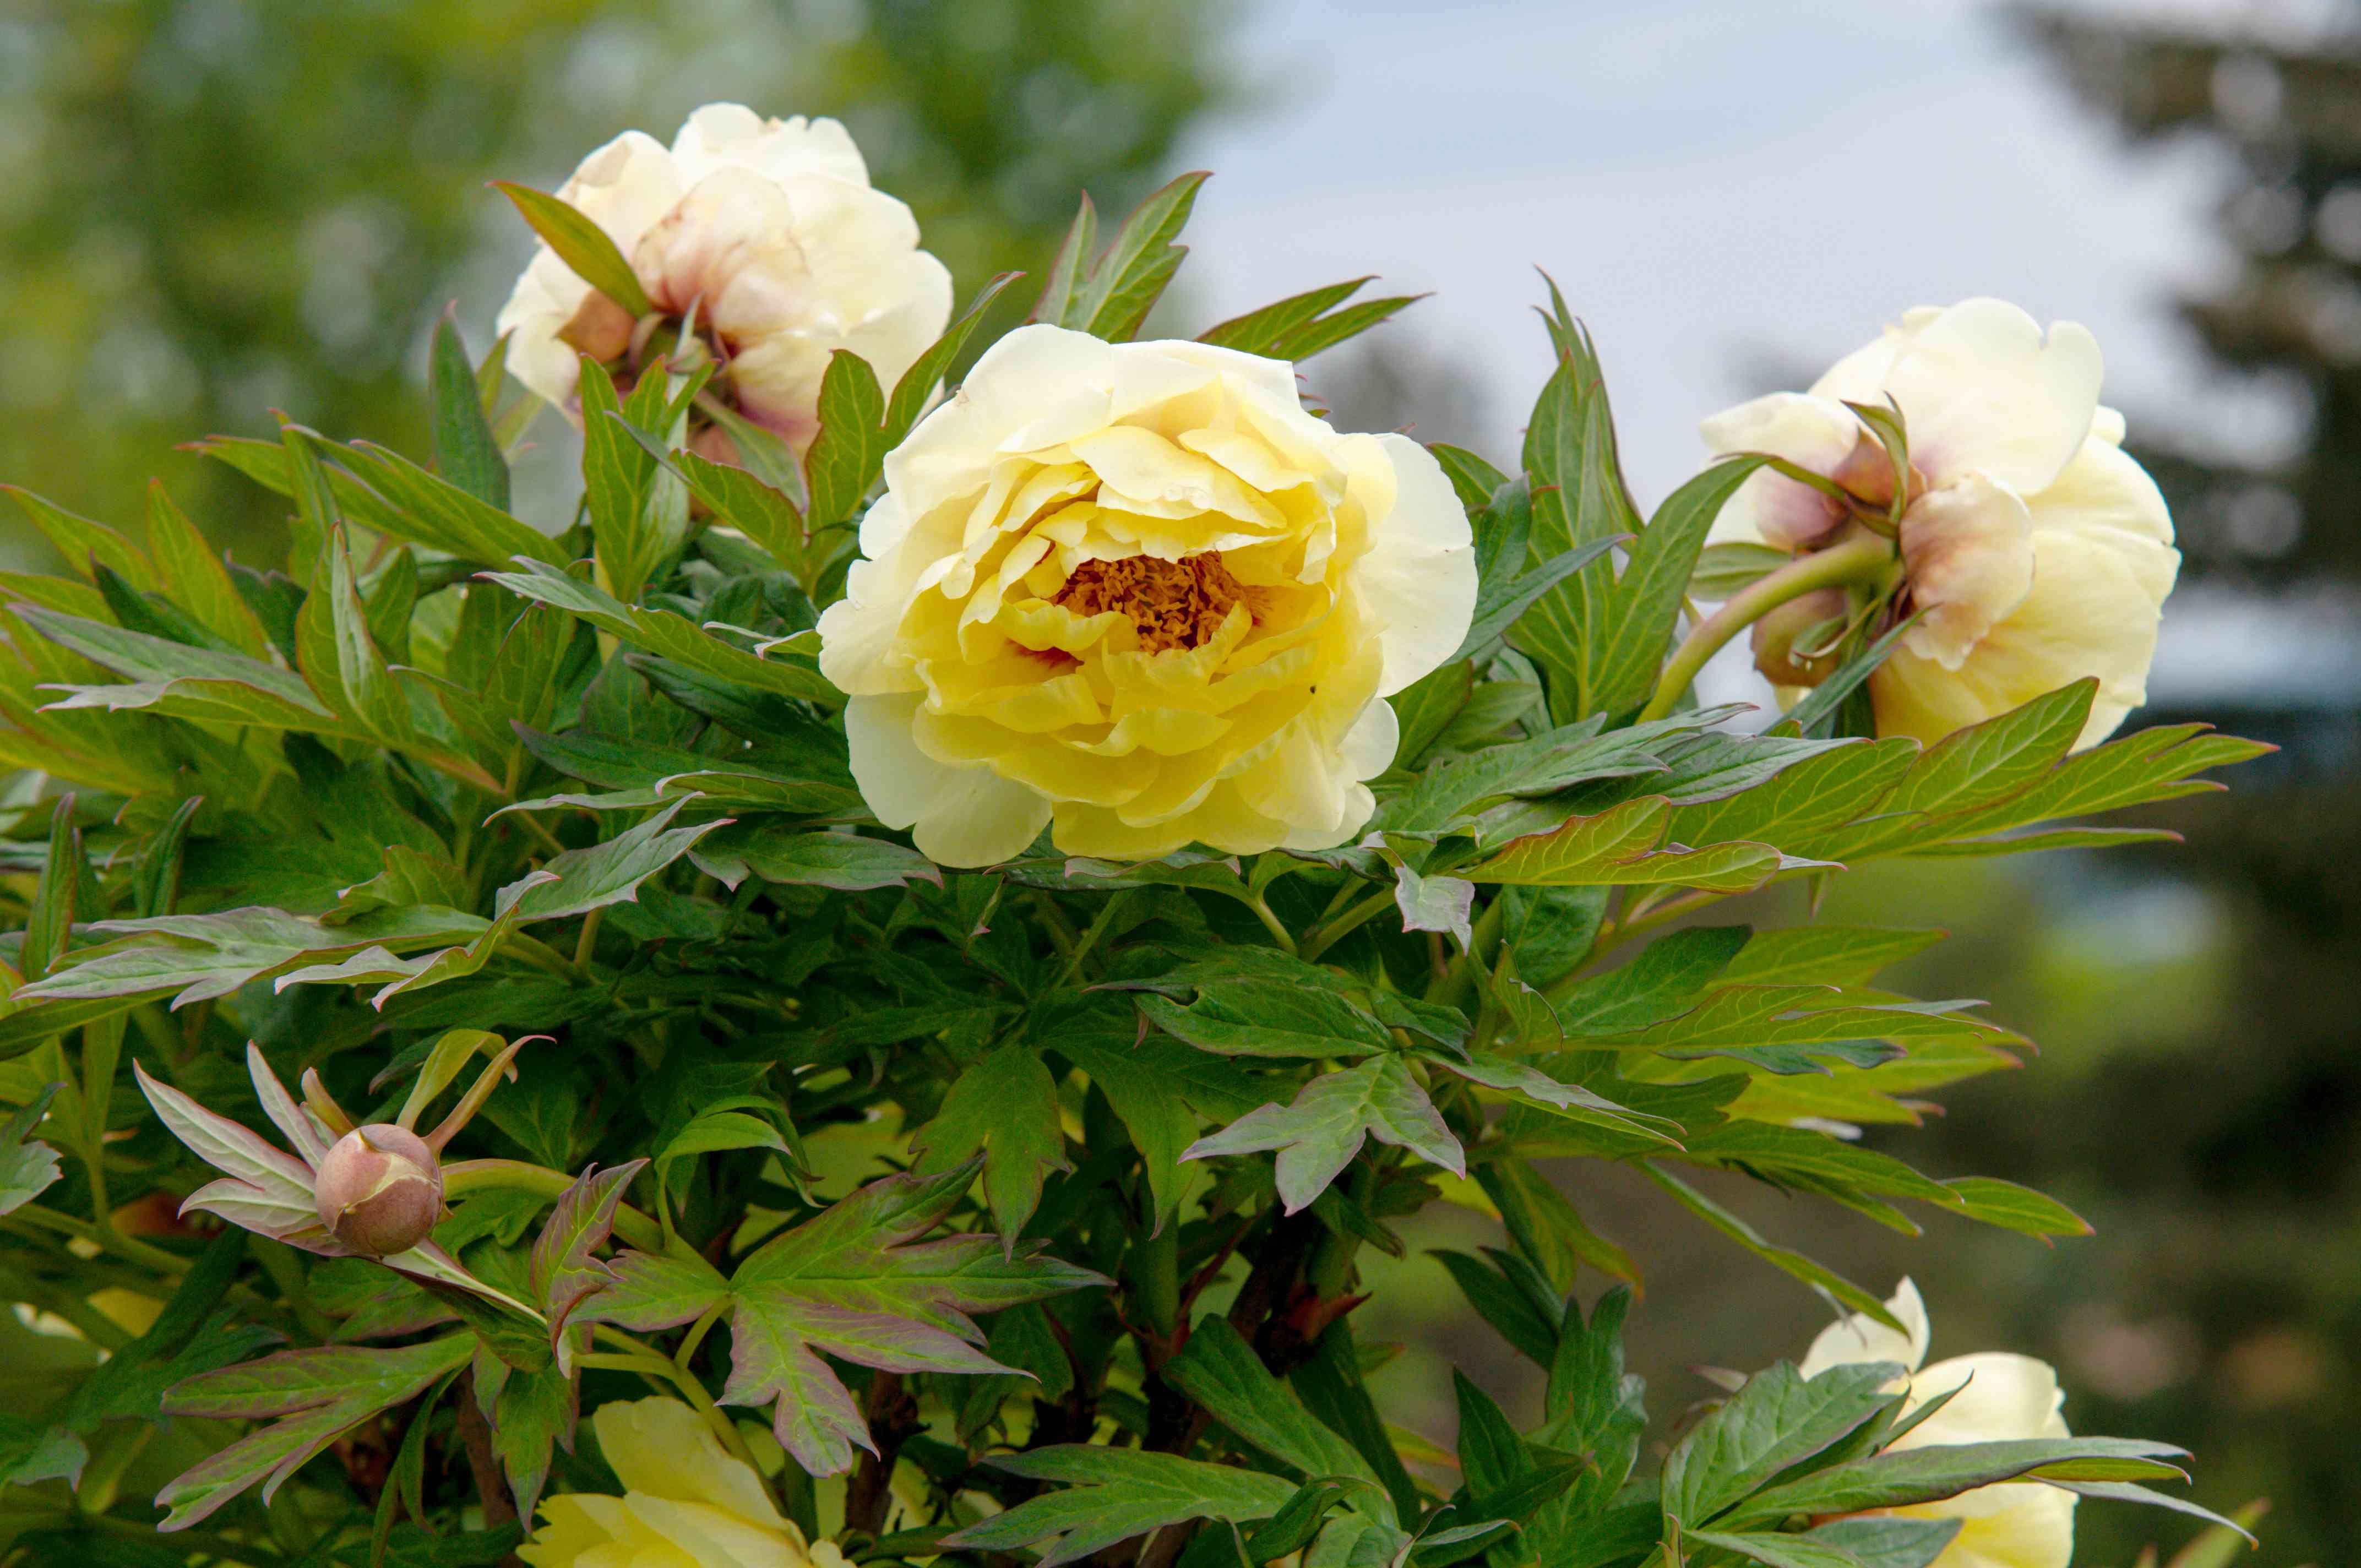 Itoh peony bush with yellow flowers and buds closeup